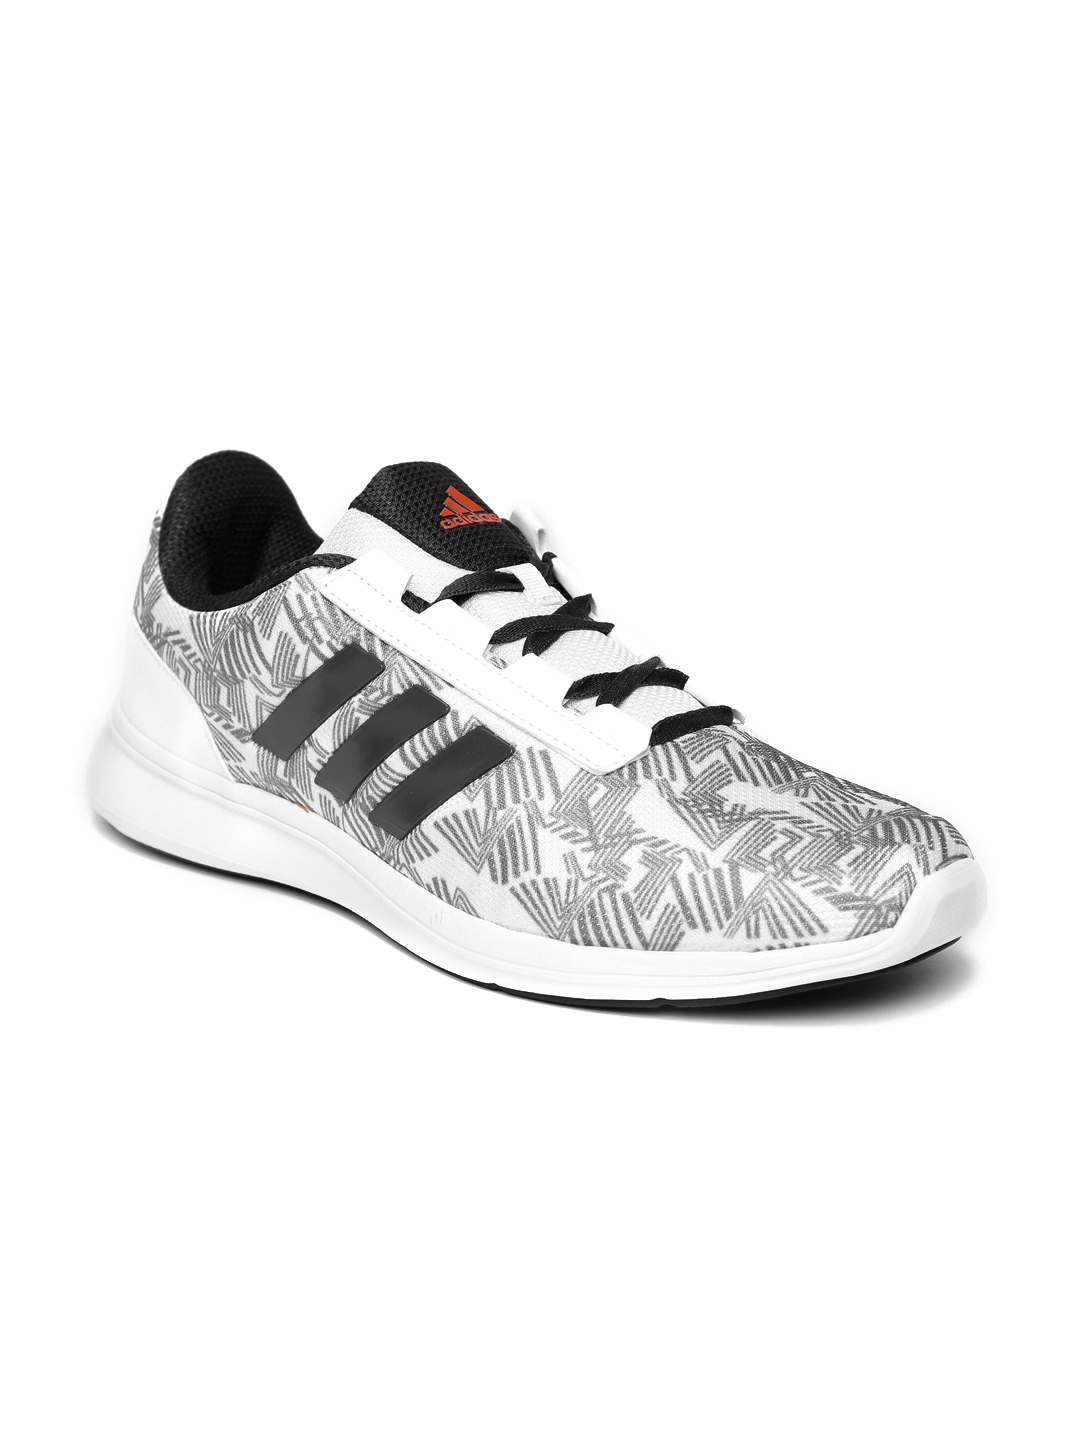 04c71b04d5 Buy ADIDAS Men Grey Adi Pacer Elite 2.0 M Running Shoes - Sports ...